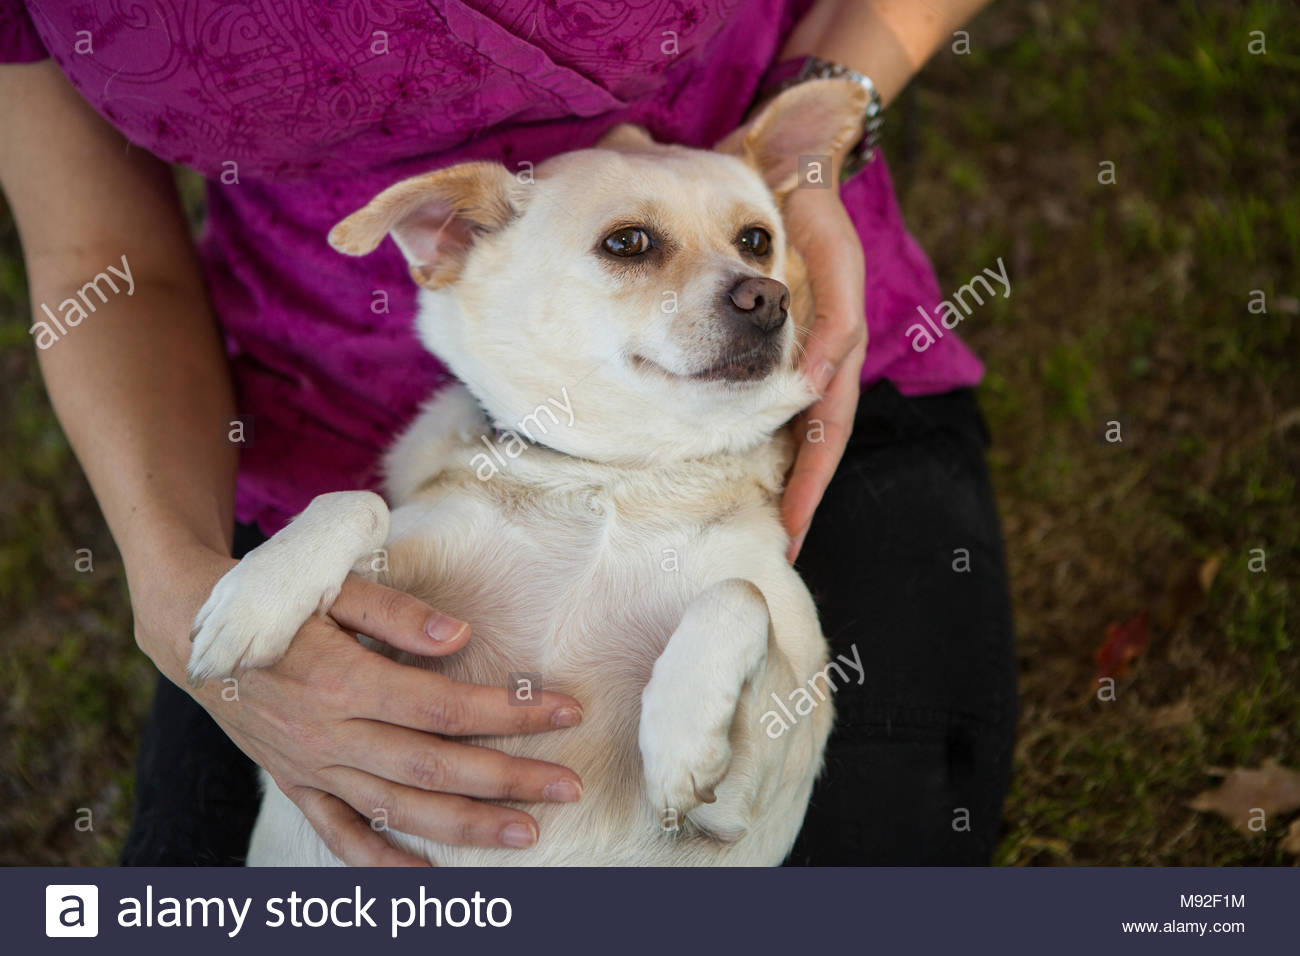 small white chihuahua-terrier mix dog laying on his back in womans lap being petted and looking at camera - Stock Image